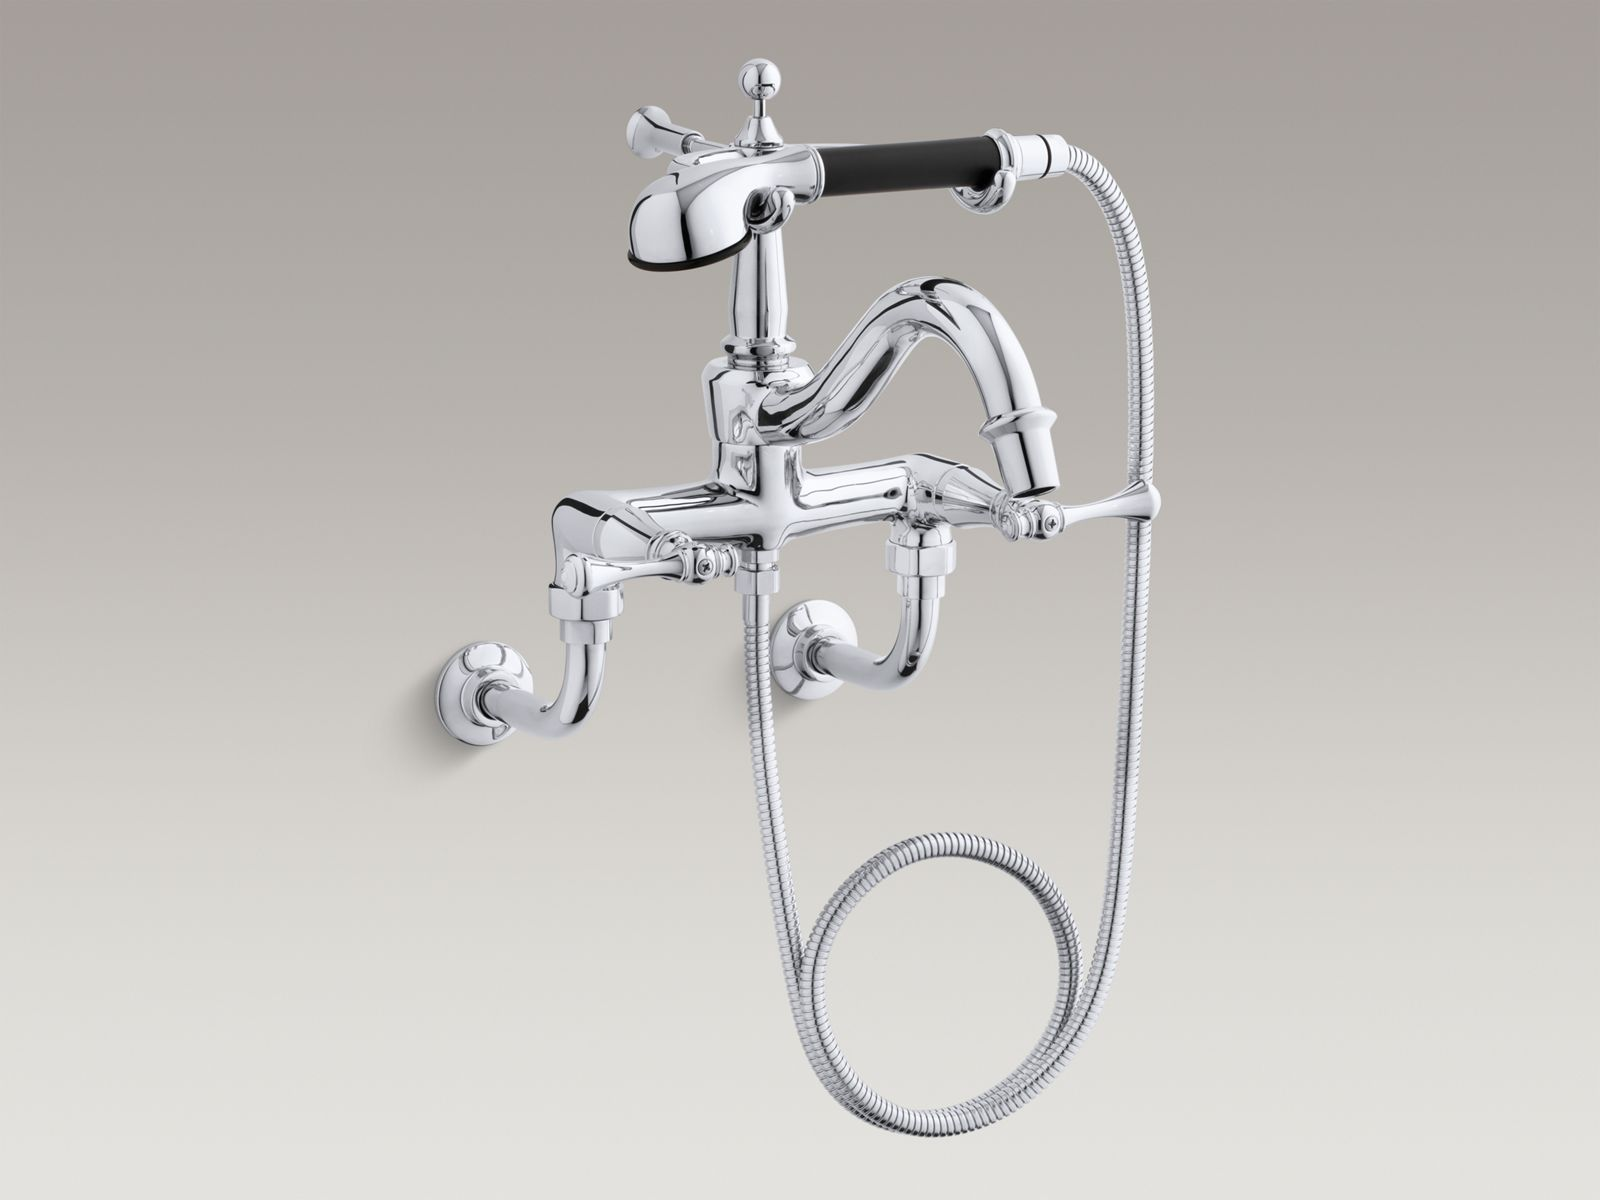 Revival® bath faucet with diverter spout, traditional lever handles and  handshower